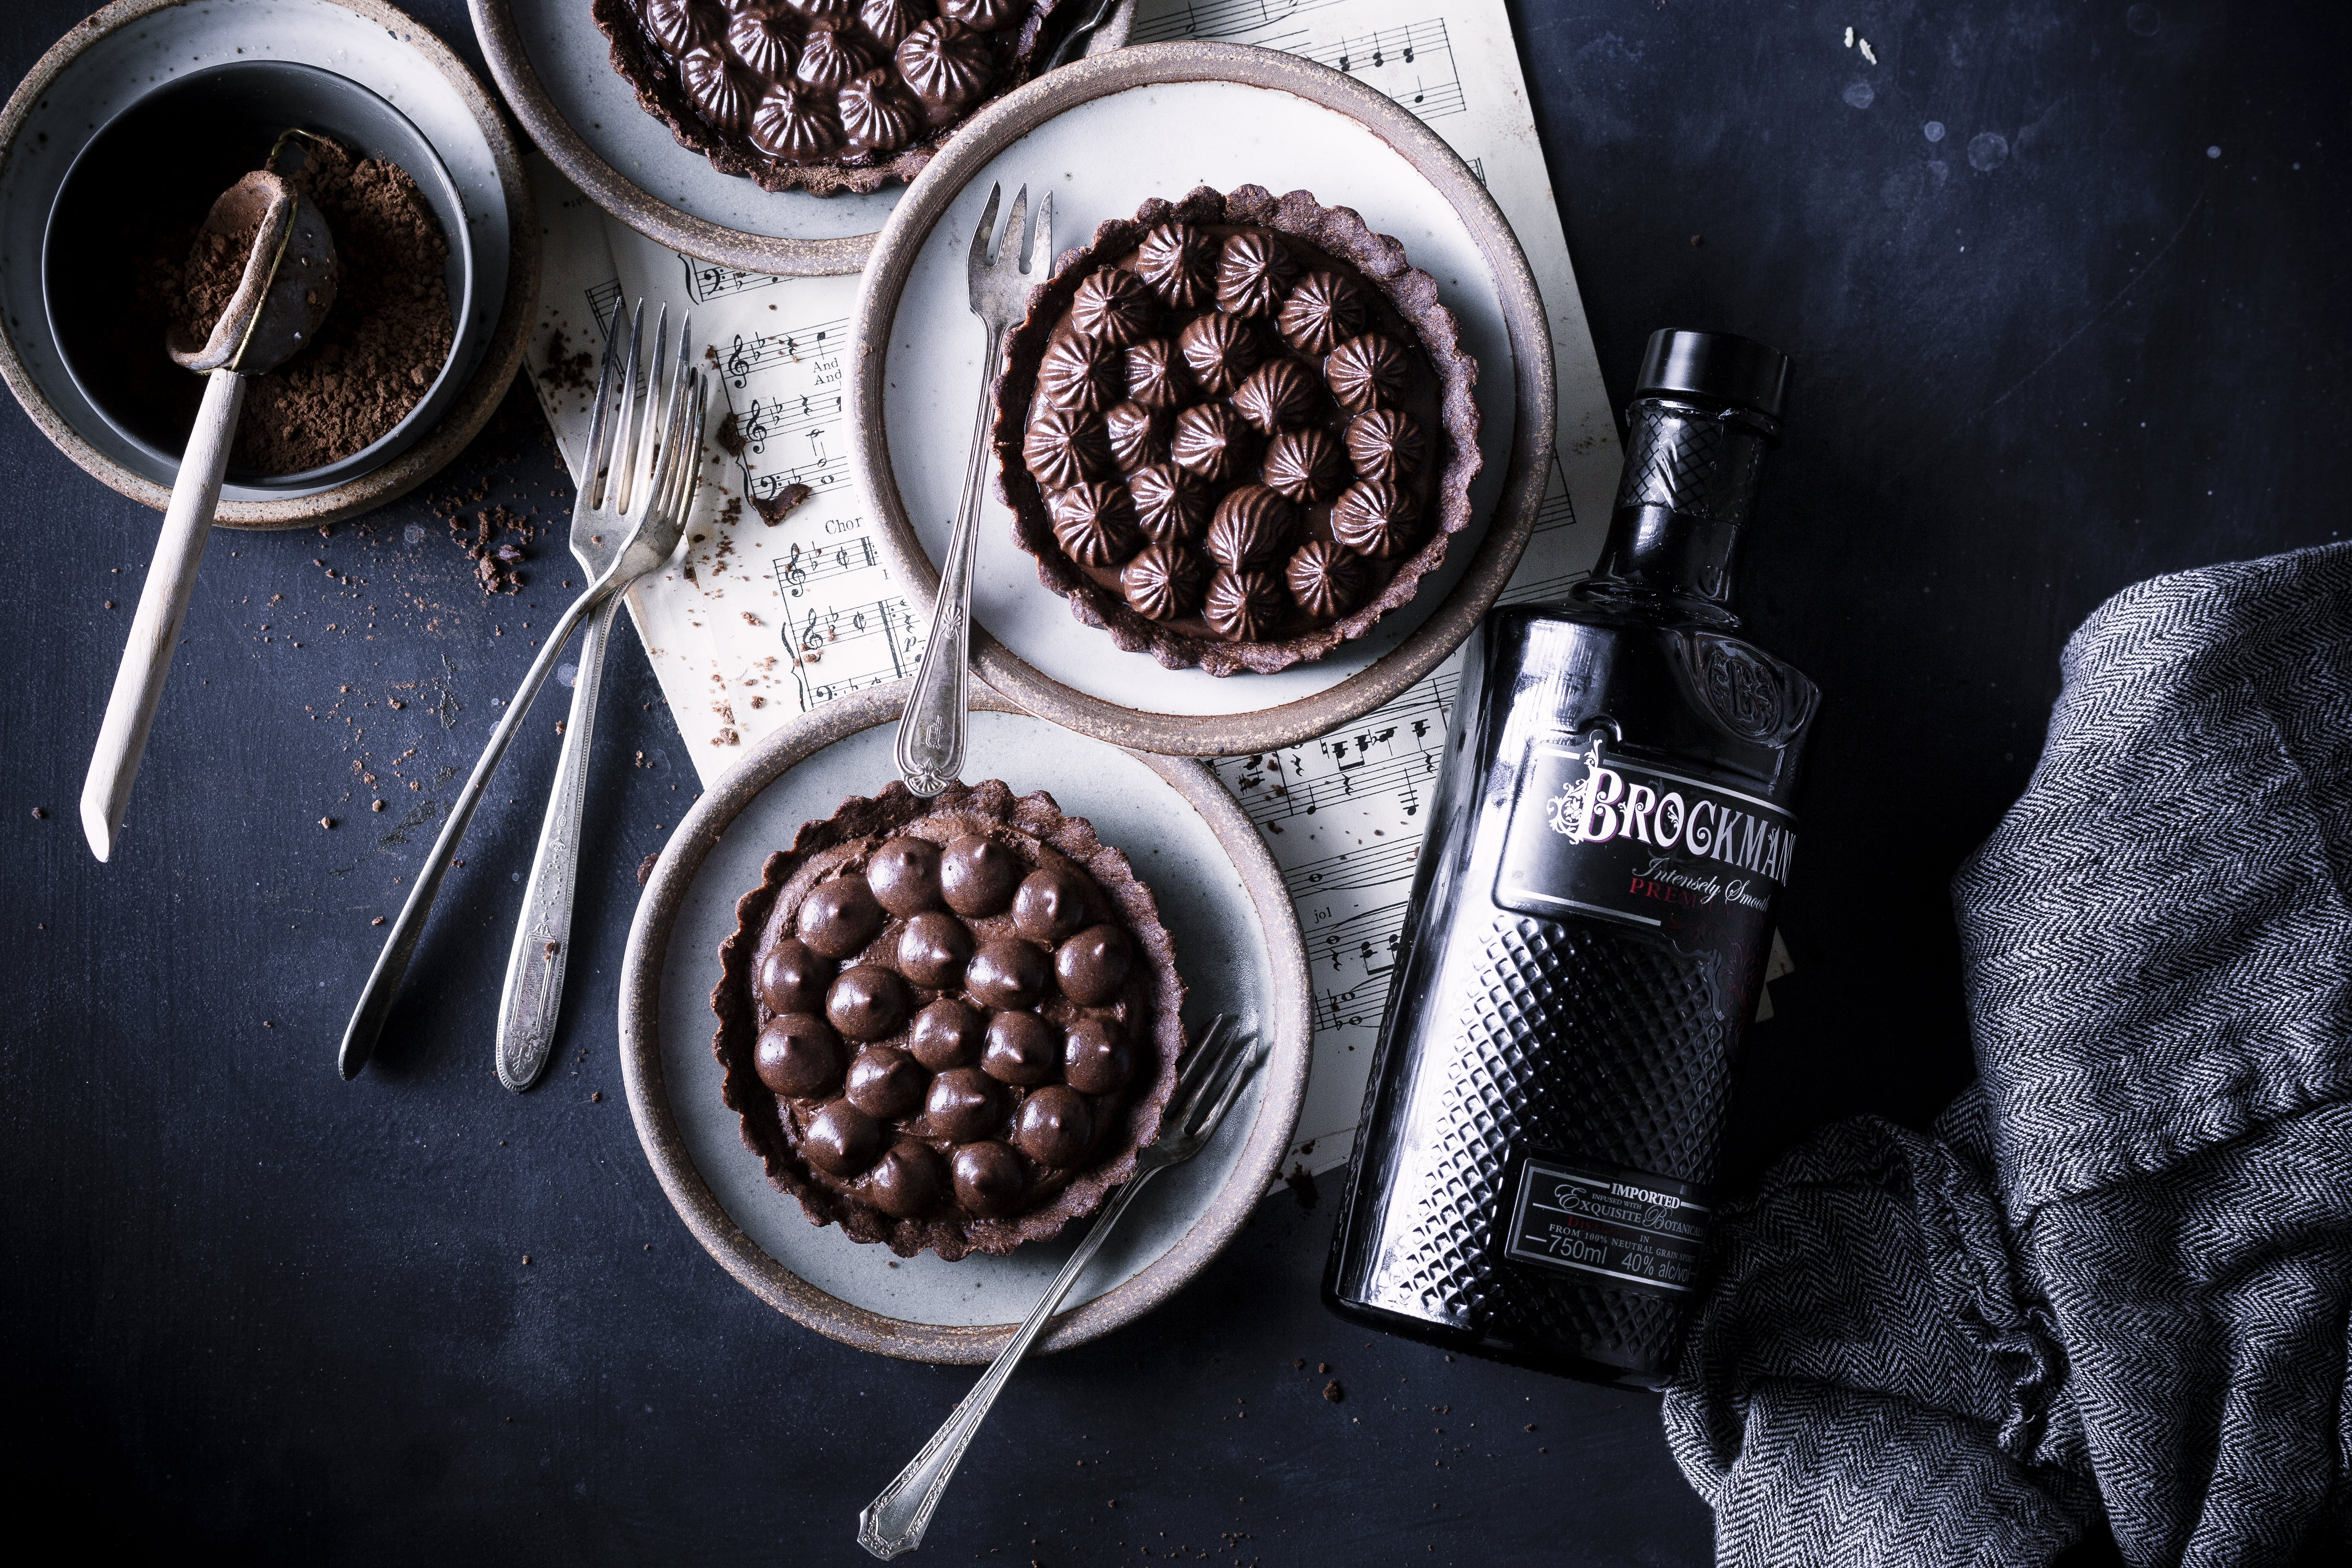 Brockmans Gin Infused Mousse Chocolate Tart